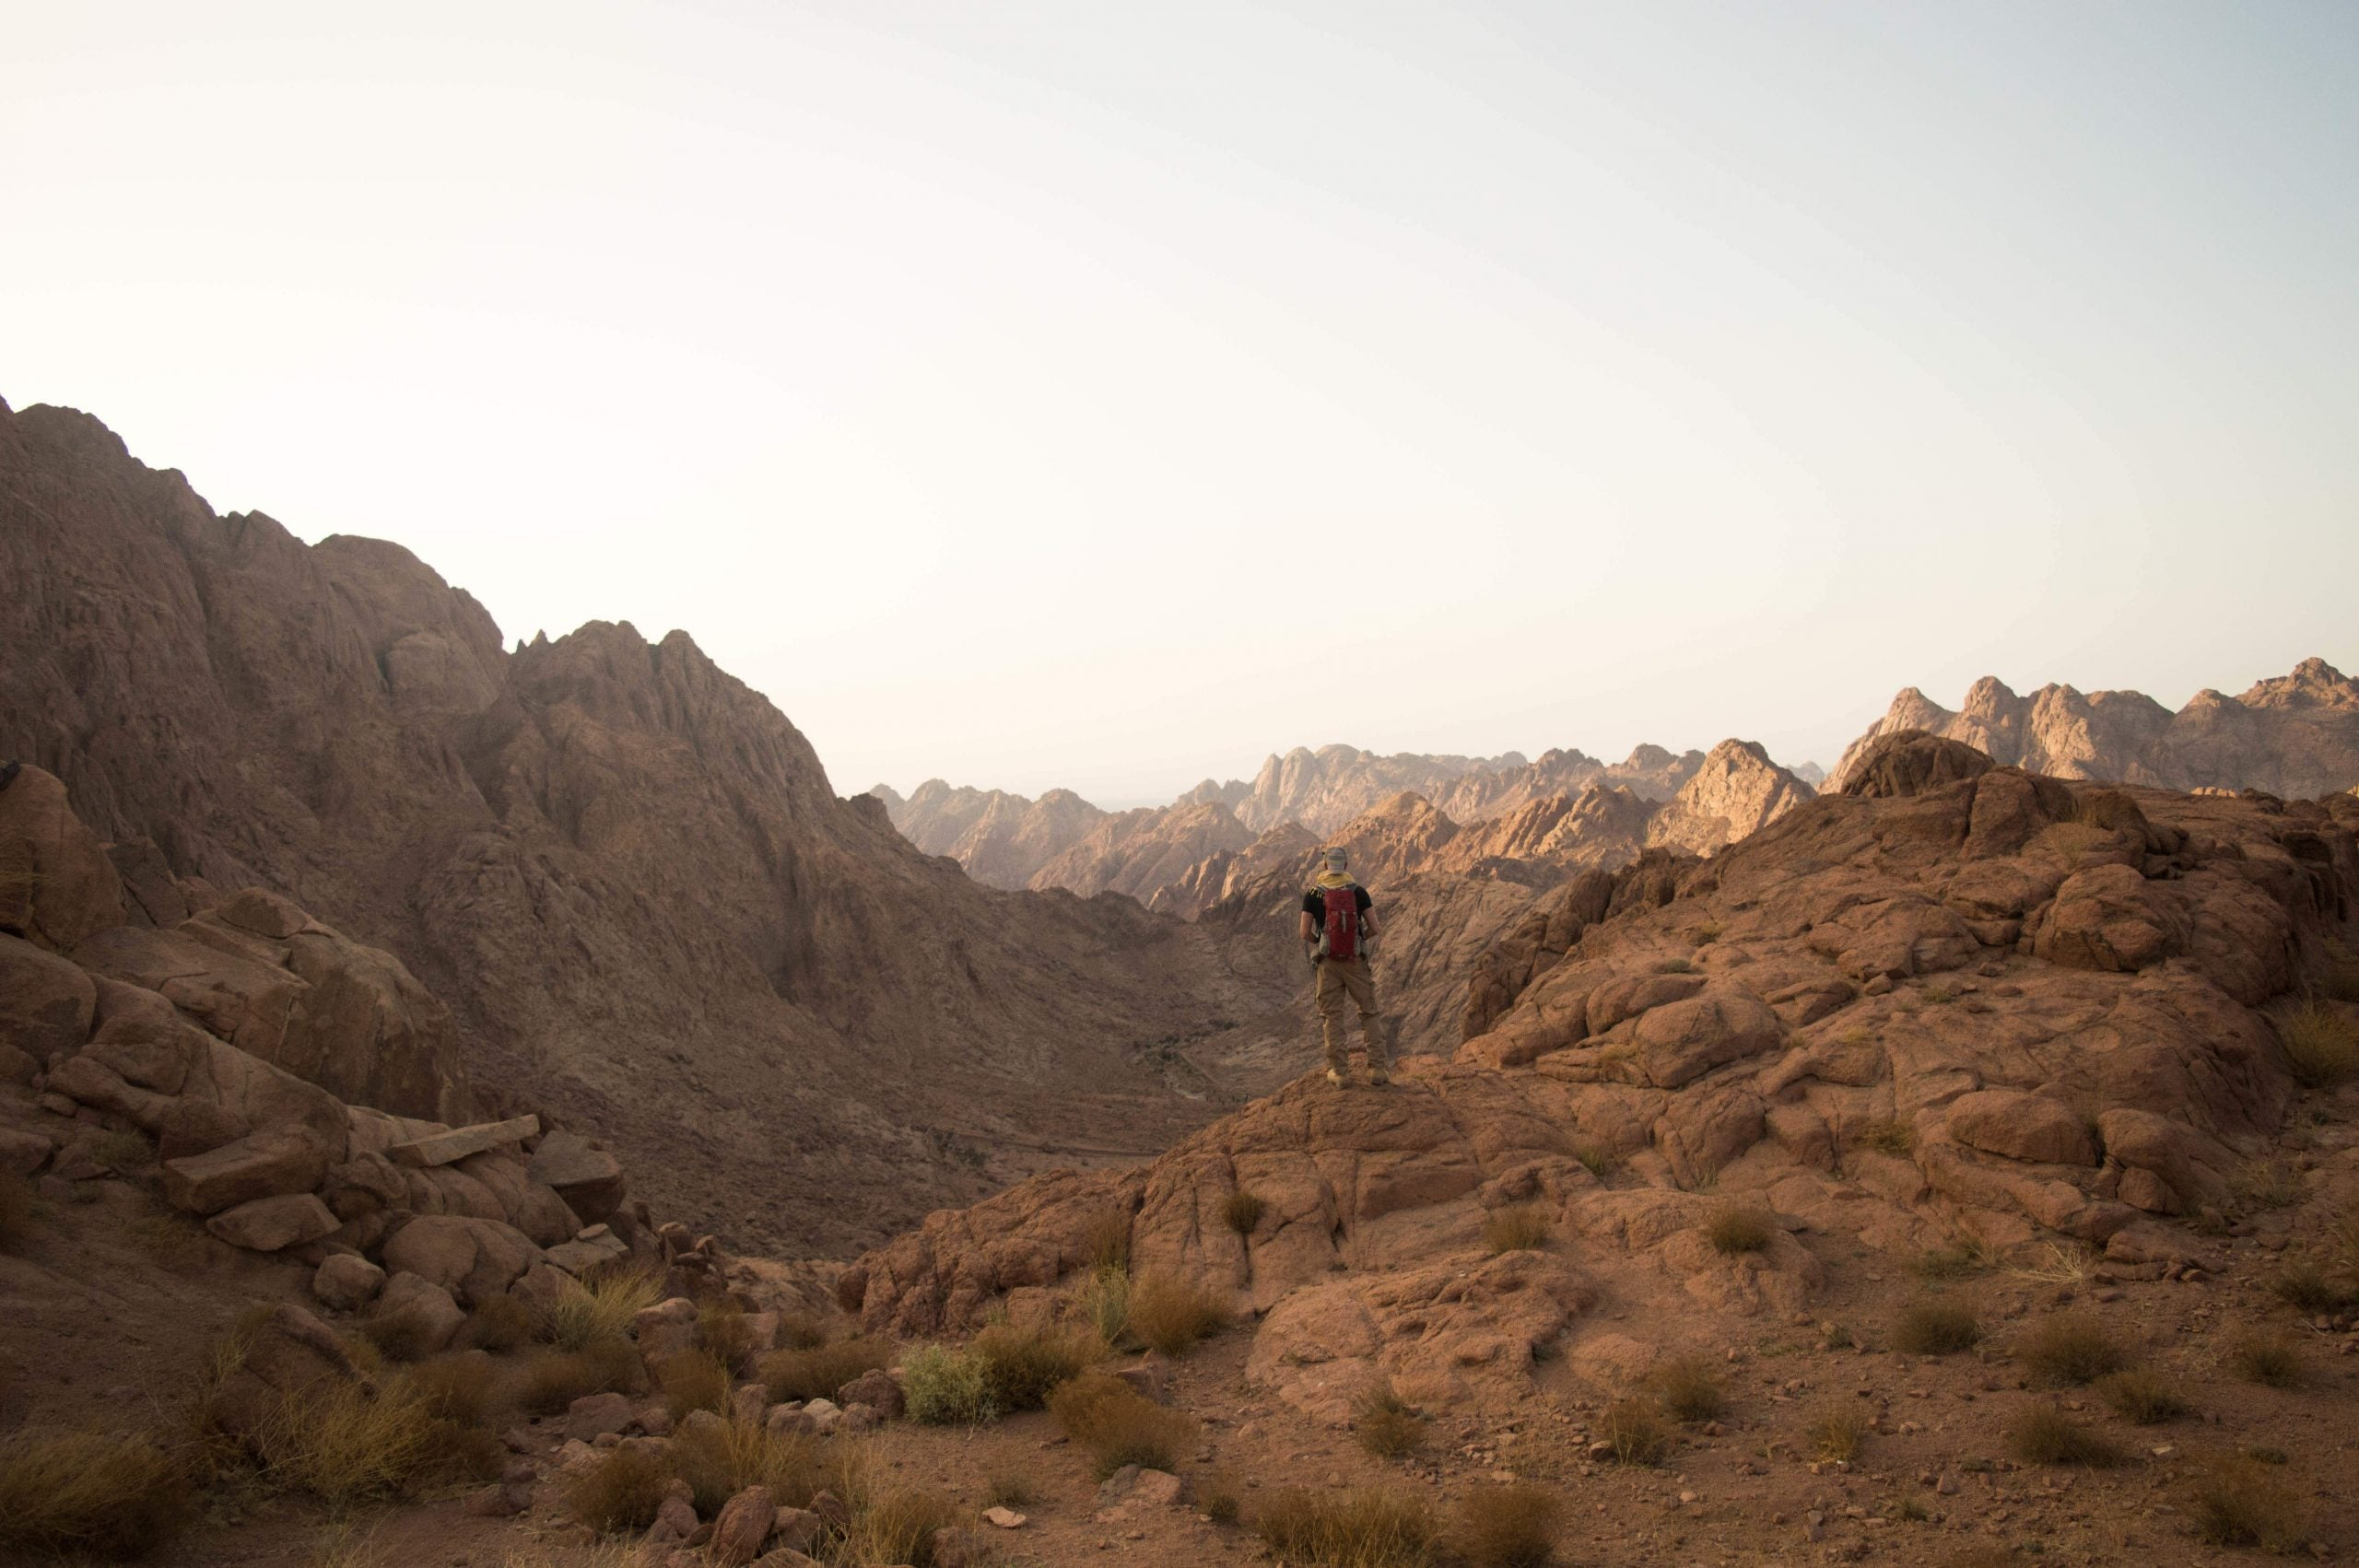 """""""Sinai is safe"""": the Bedouin tribespeople fighting a devastating tourism decline in the Egyptian peninsula"""